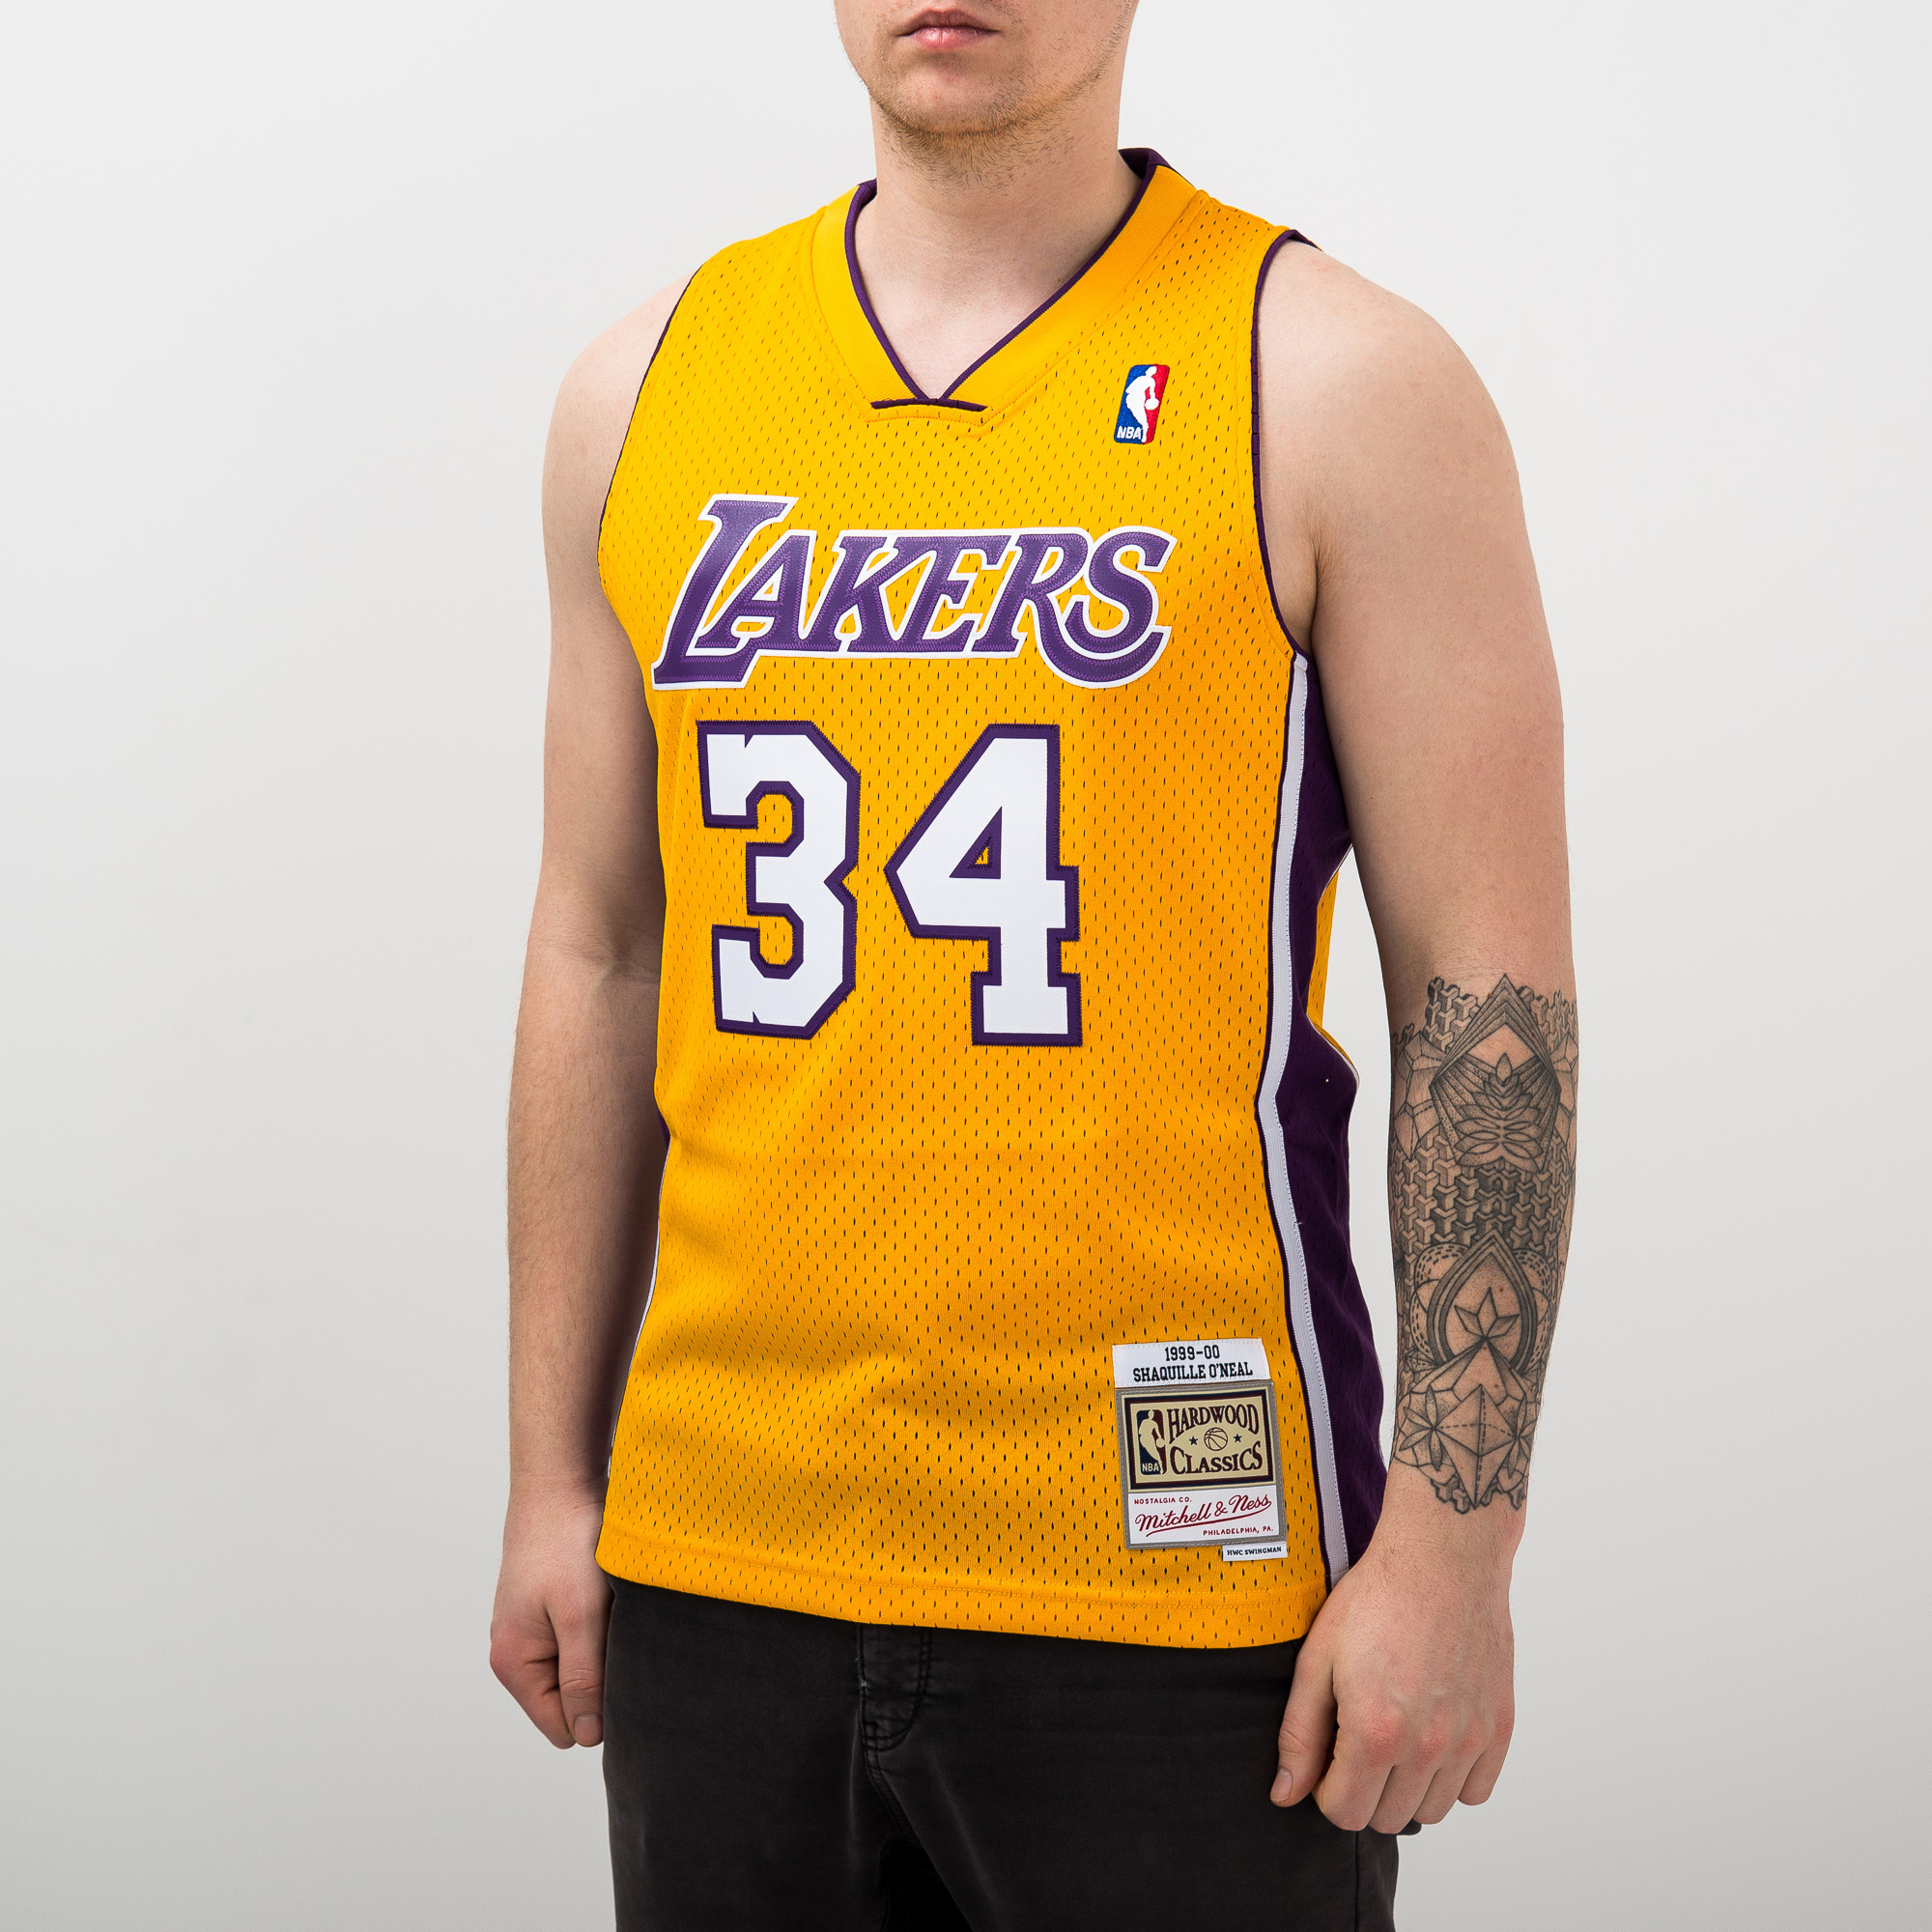 46b8cc9ef64 Mitchell   Ness NBA Los Angeles Lakers Shaquille O Neal 1999-00 Home  Swingman Jersey - NBA Shop Los Angeles Lakers Merchandise - Superfanas.lt